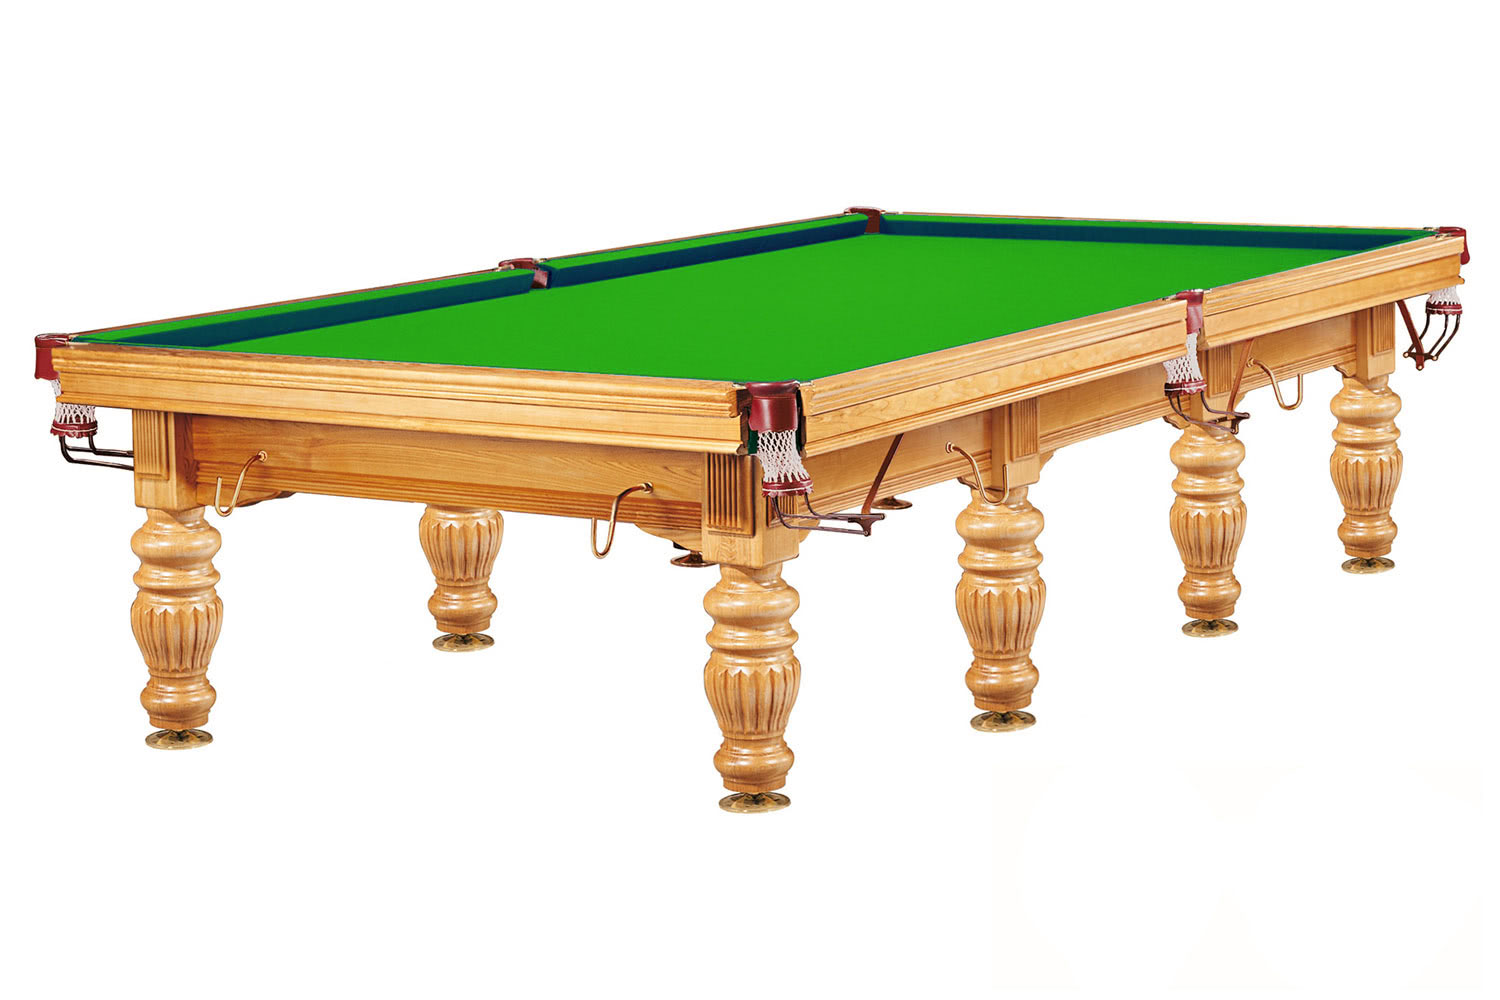 Dynamic prince snooker table liberty games for 12ft snooker table for sale uk